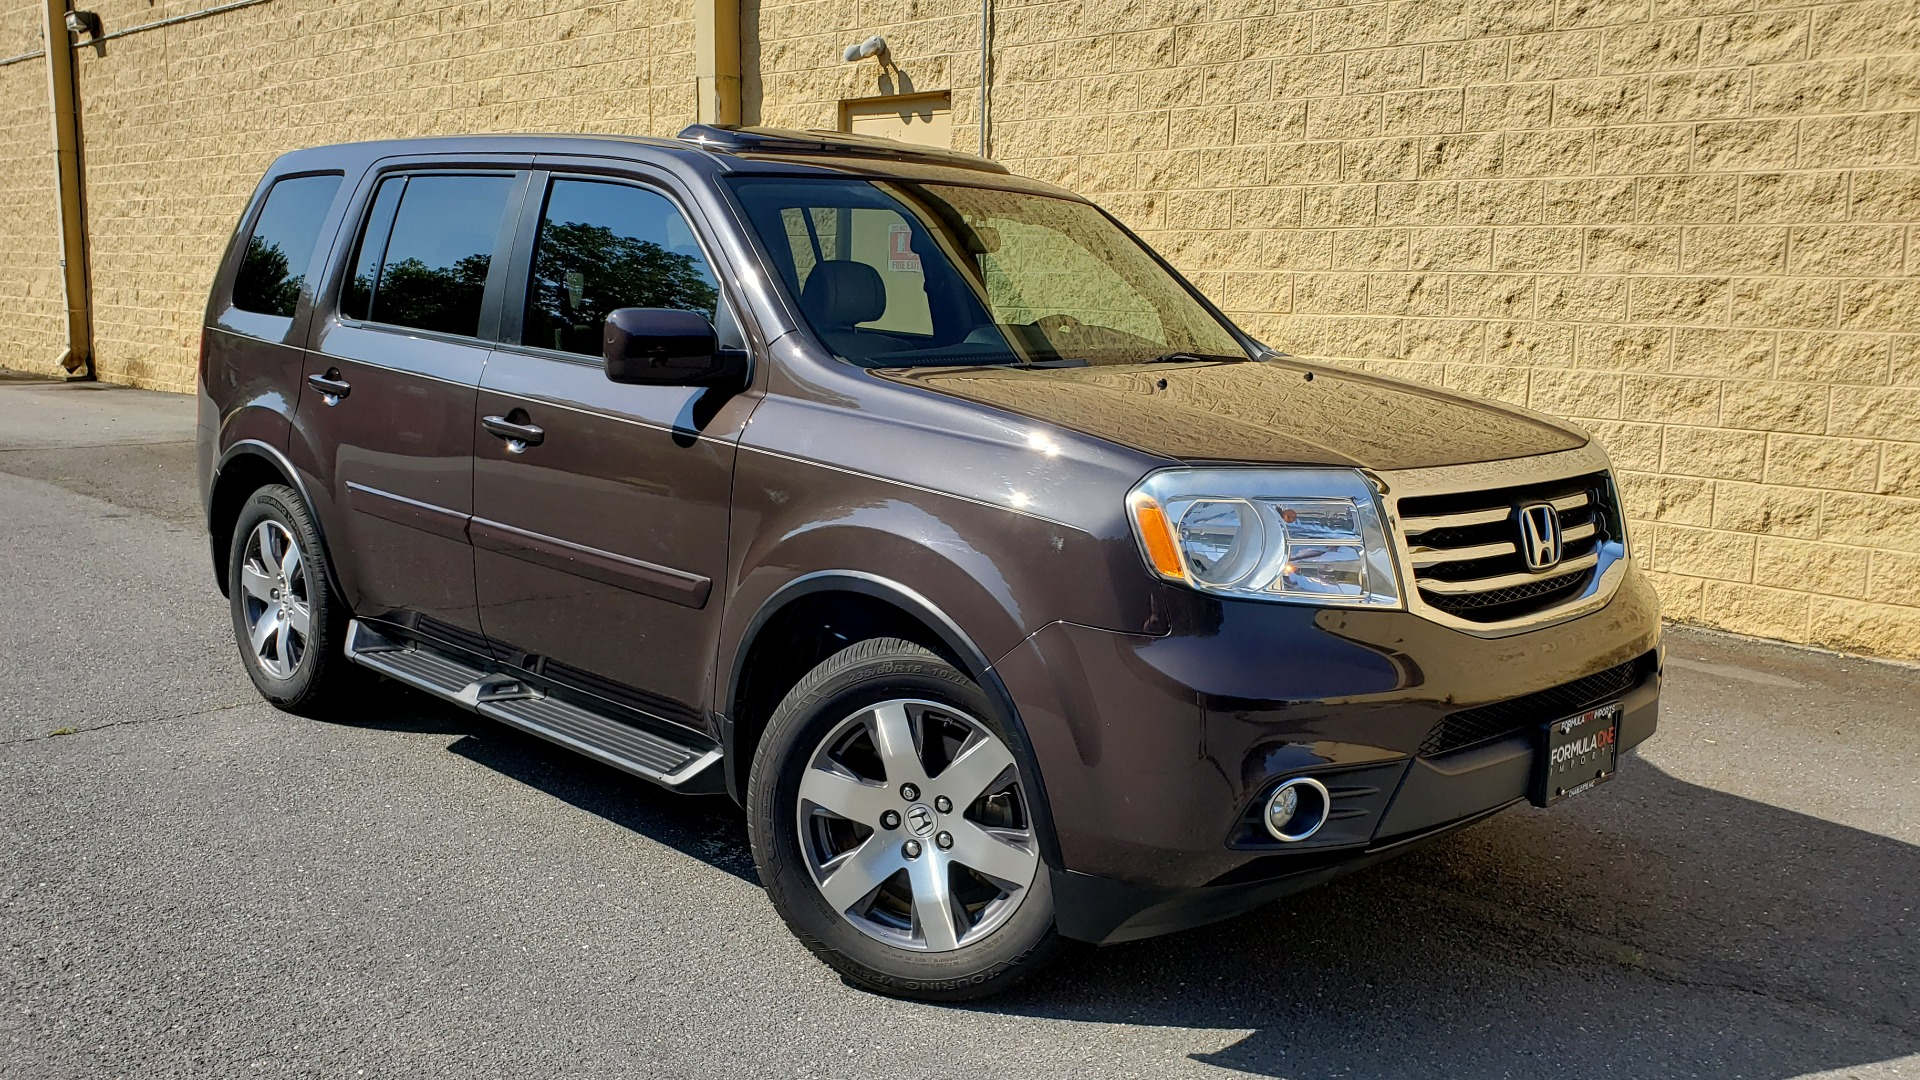 Used 2014 Honda PILOT EX-L / SUNROOF / HTD STS / DUAL-ZONE CLIMATE / REARVIEW for sale $16,995 at Formula Imports in Charlotte NC 28227 4